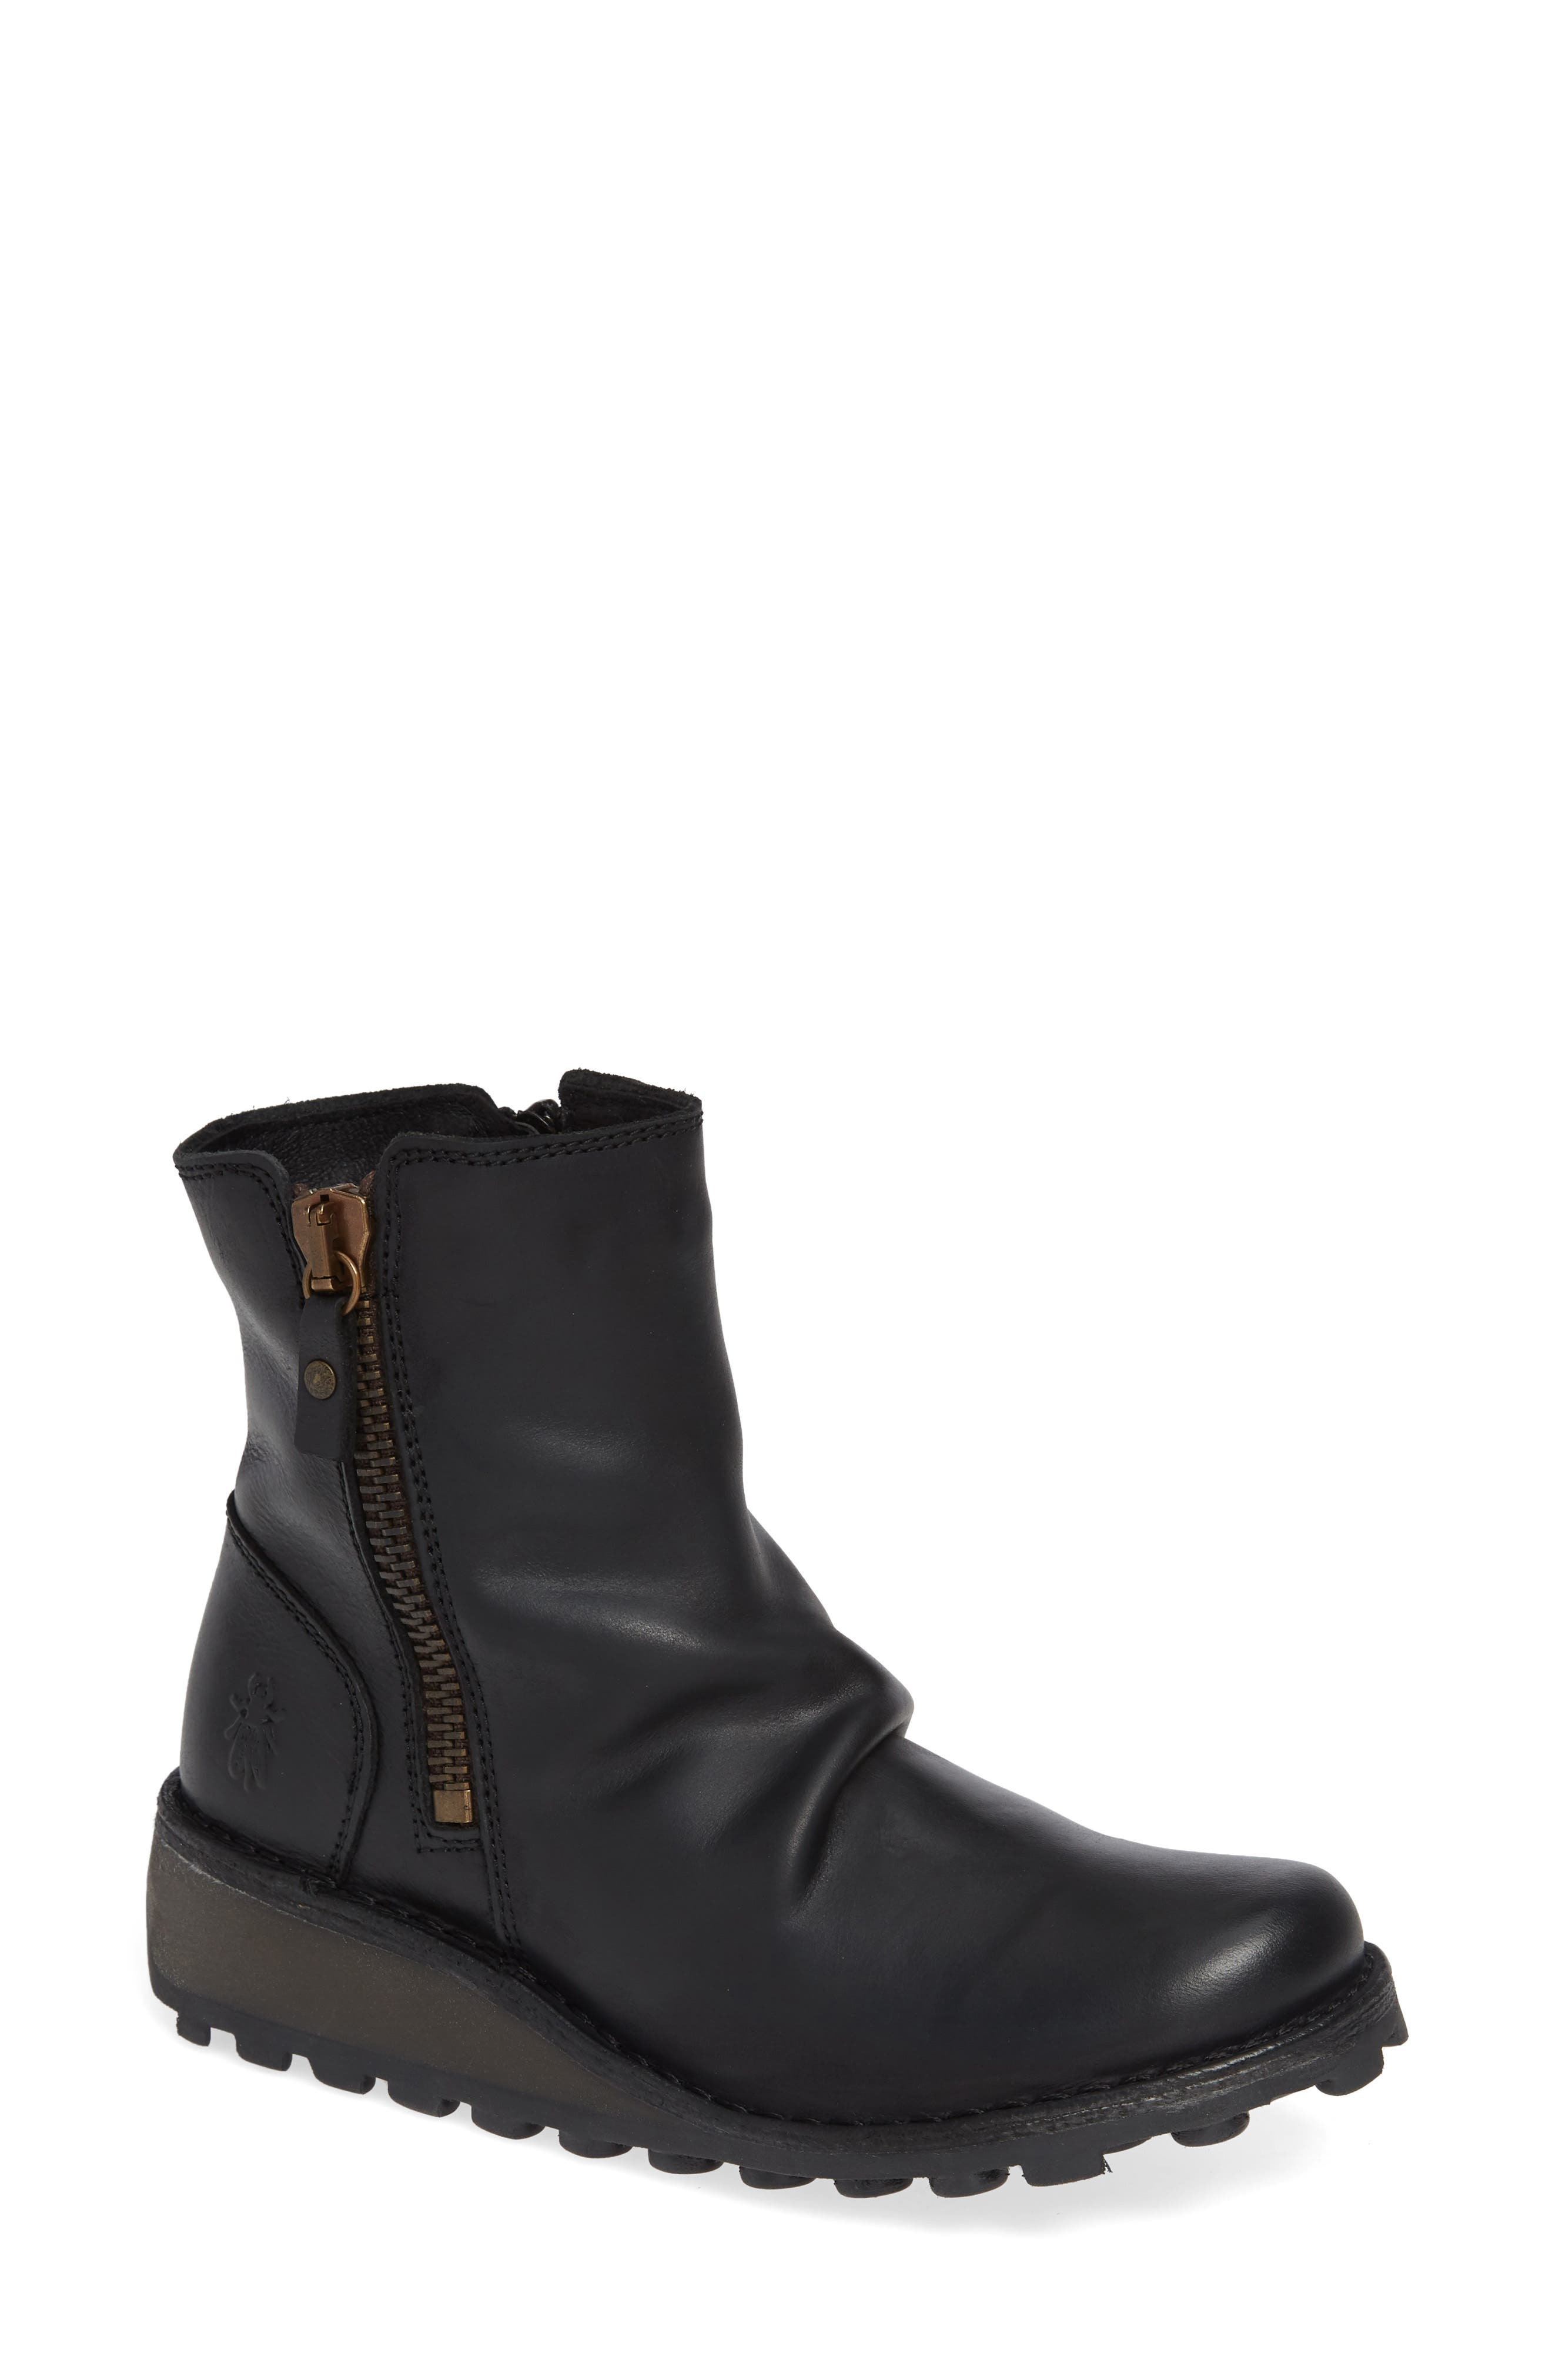 FLY LONDON Mong Boot, Main, color, BLACK LEATHER